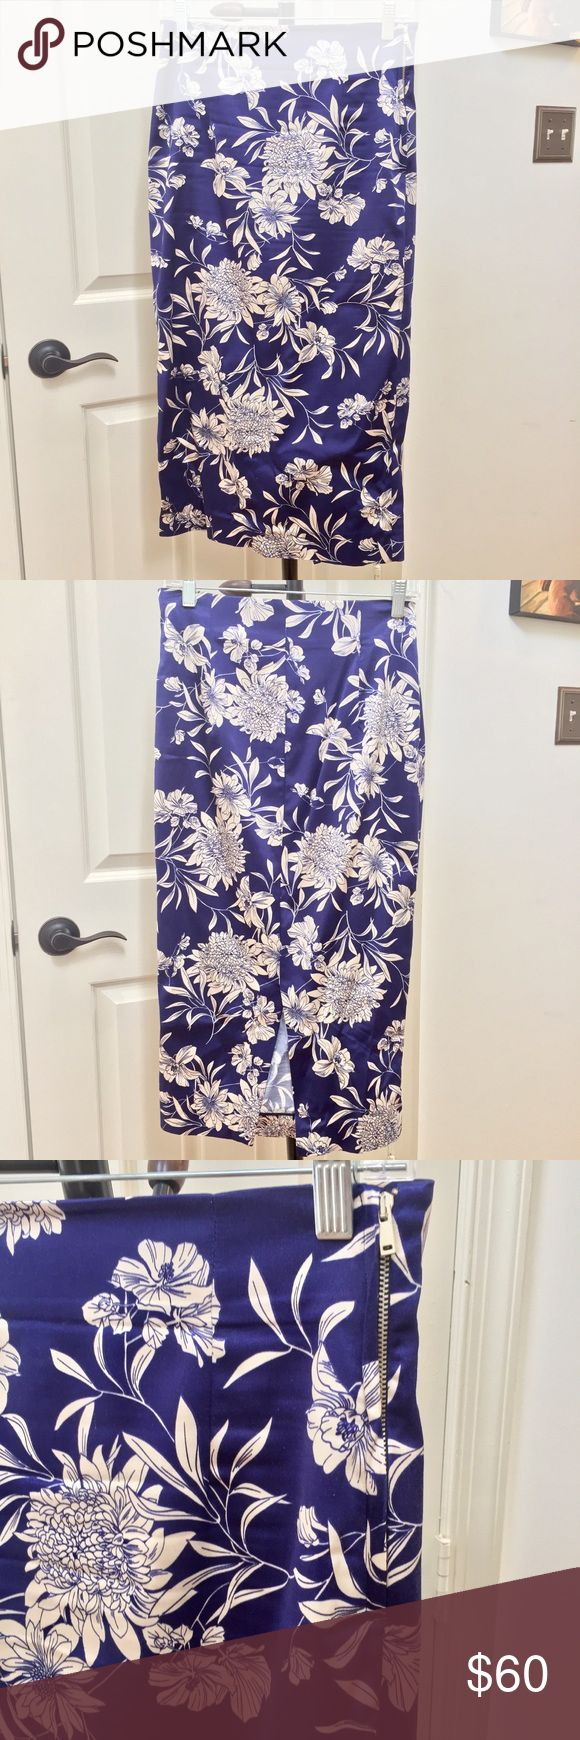 "Zara floral satin midi skirt Purchased in Dubai and worn ONCE! Perfect, like new condition. High waisted, size zip, back slit, darts on back, and this is longer than the typical midi pencil skirt. It hits me at mid-calf and I am 5'8"". Price firm unless bundled. Zara Skirts Midi"